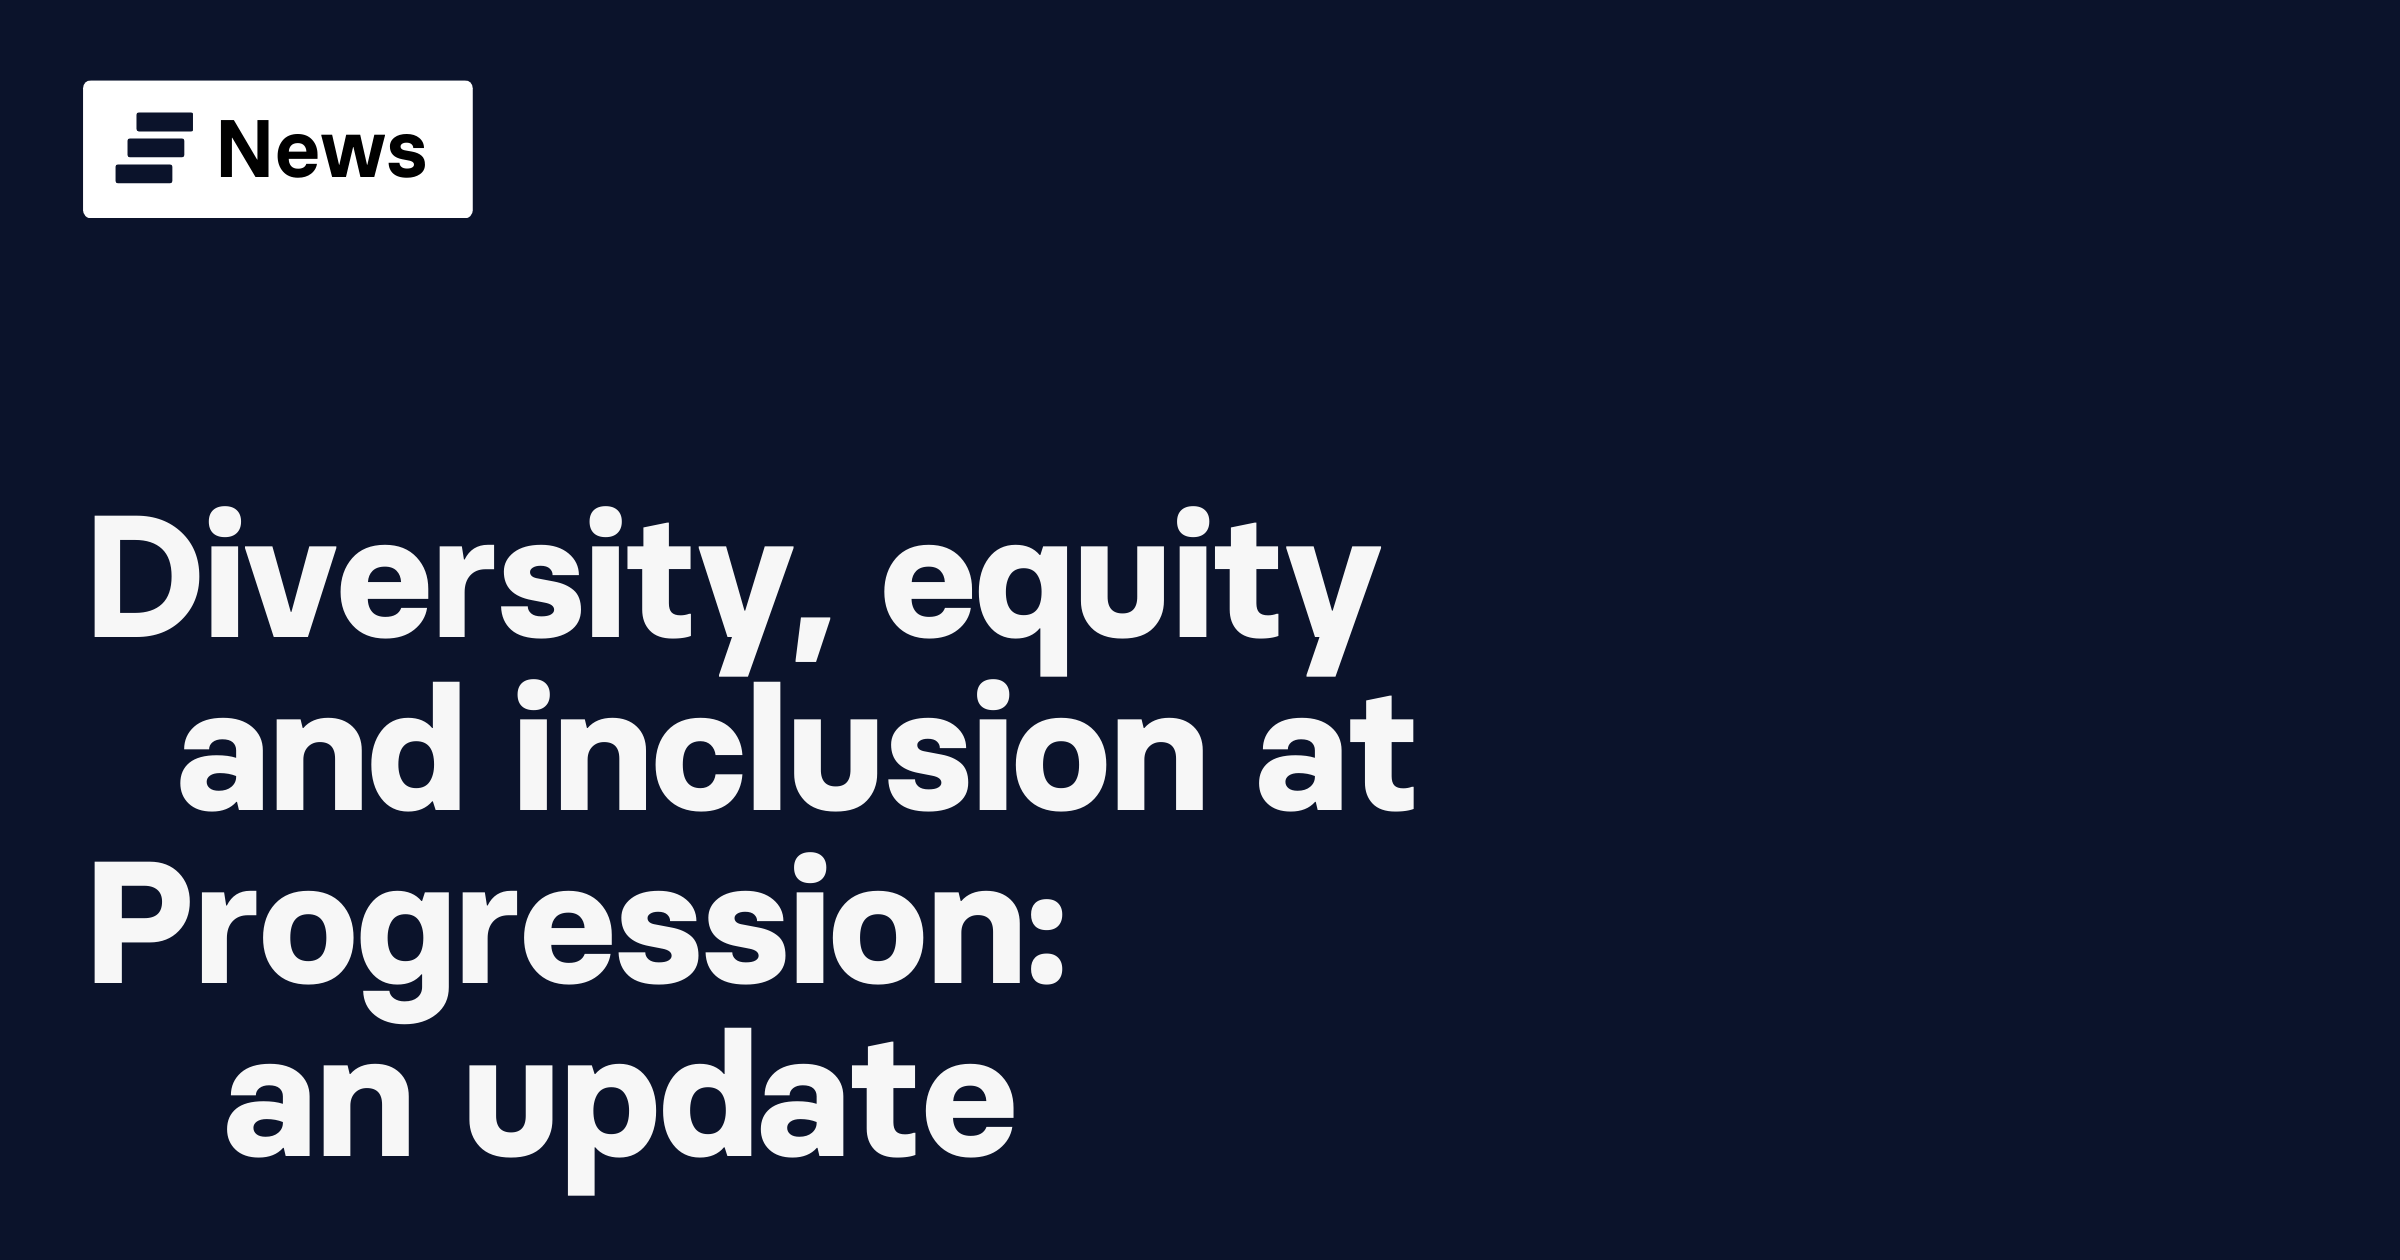 Diversity, equity and inclusion at Progression: an update